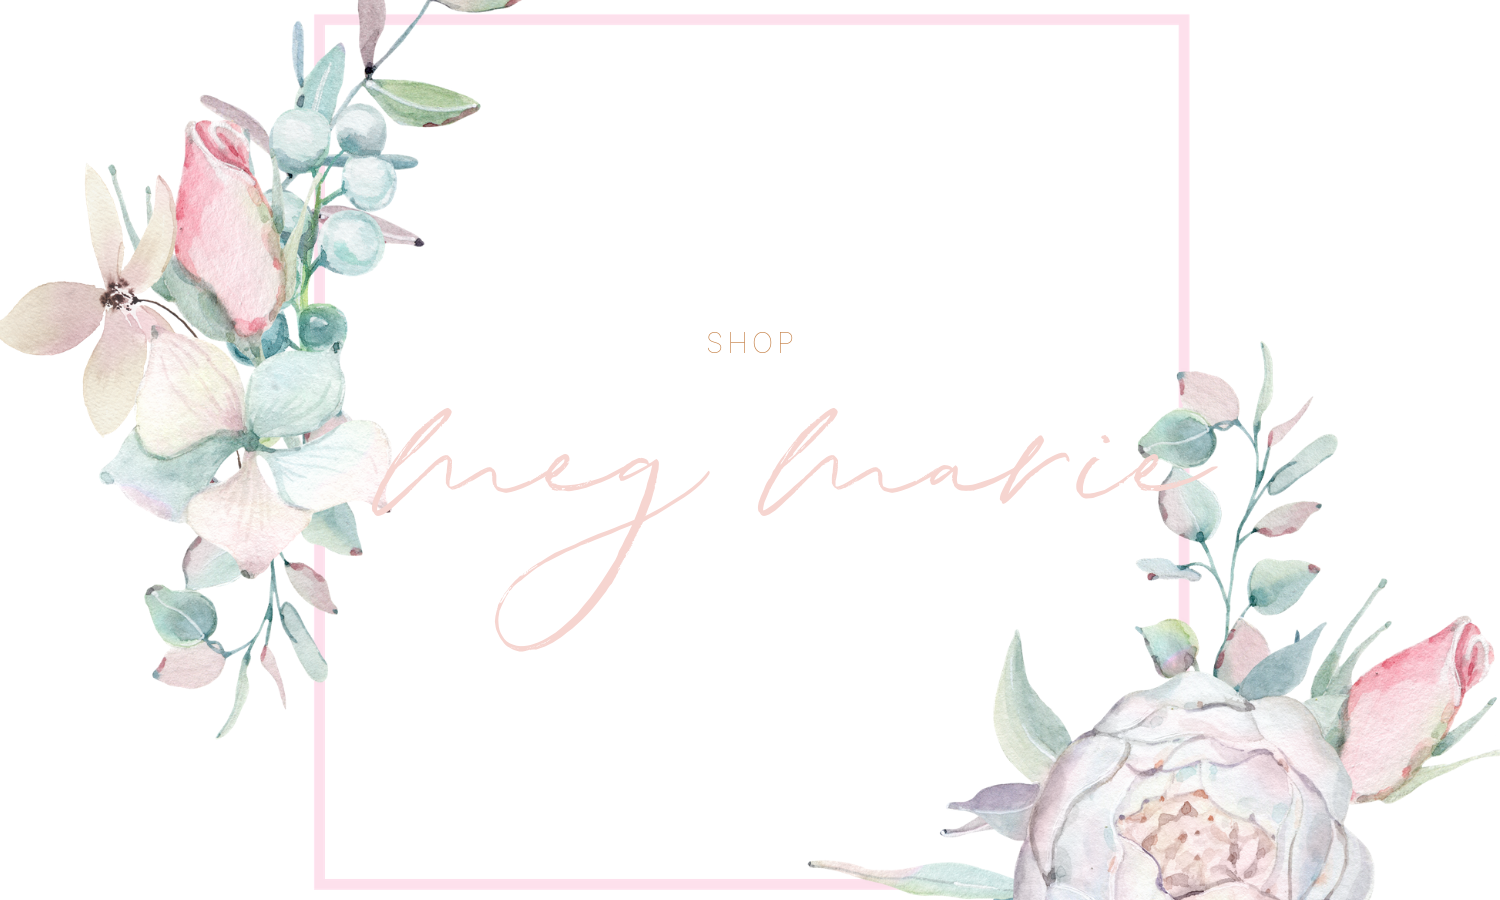 shop carousel | meg Marie Wallace | shop announcement